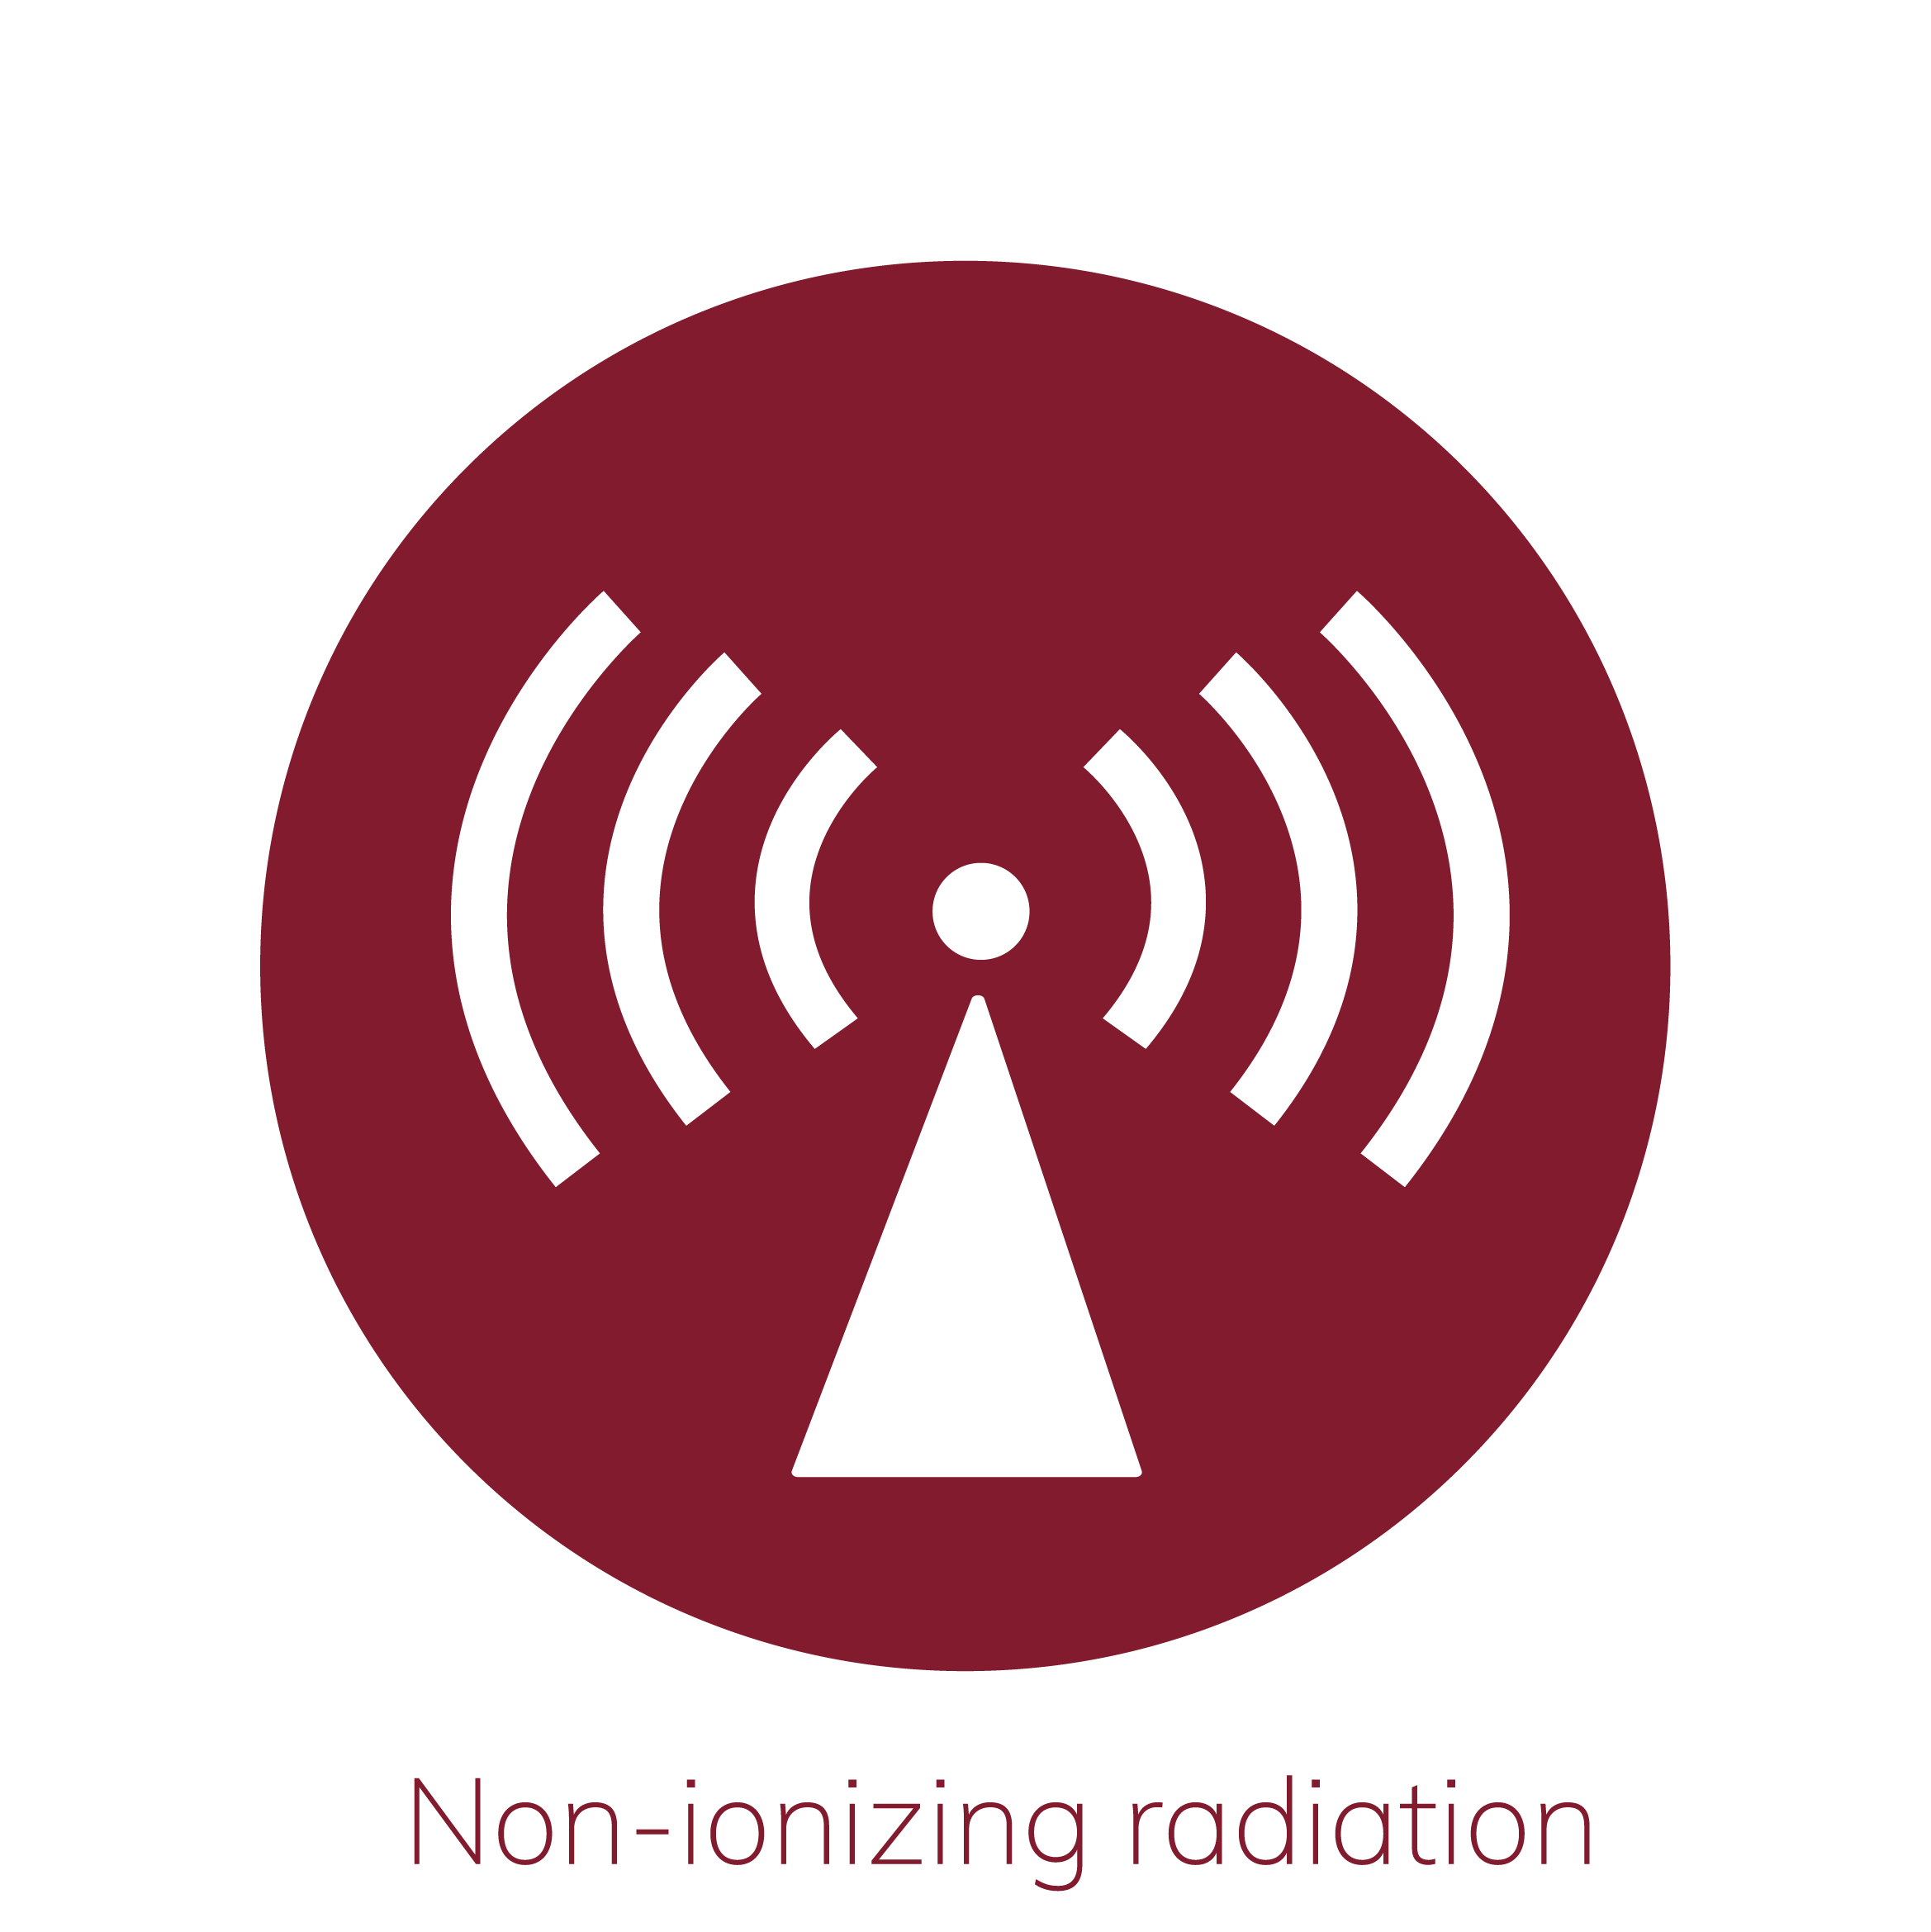 Illustration Of Non Ionizing Radiation Warning Sign